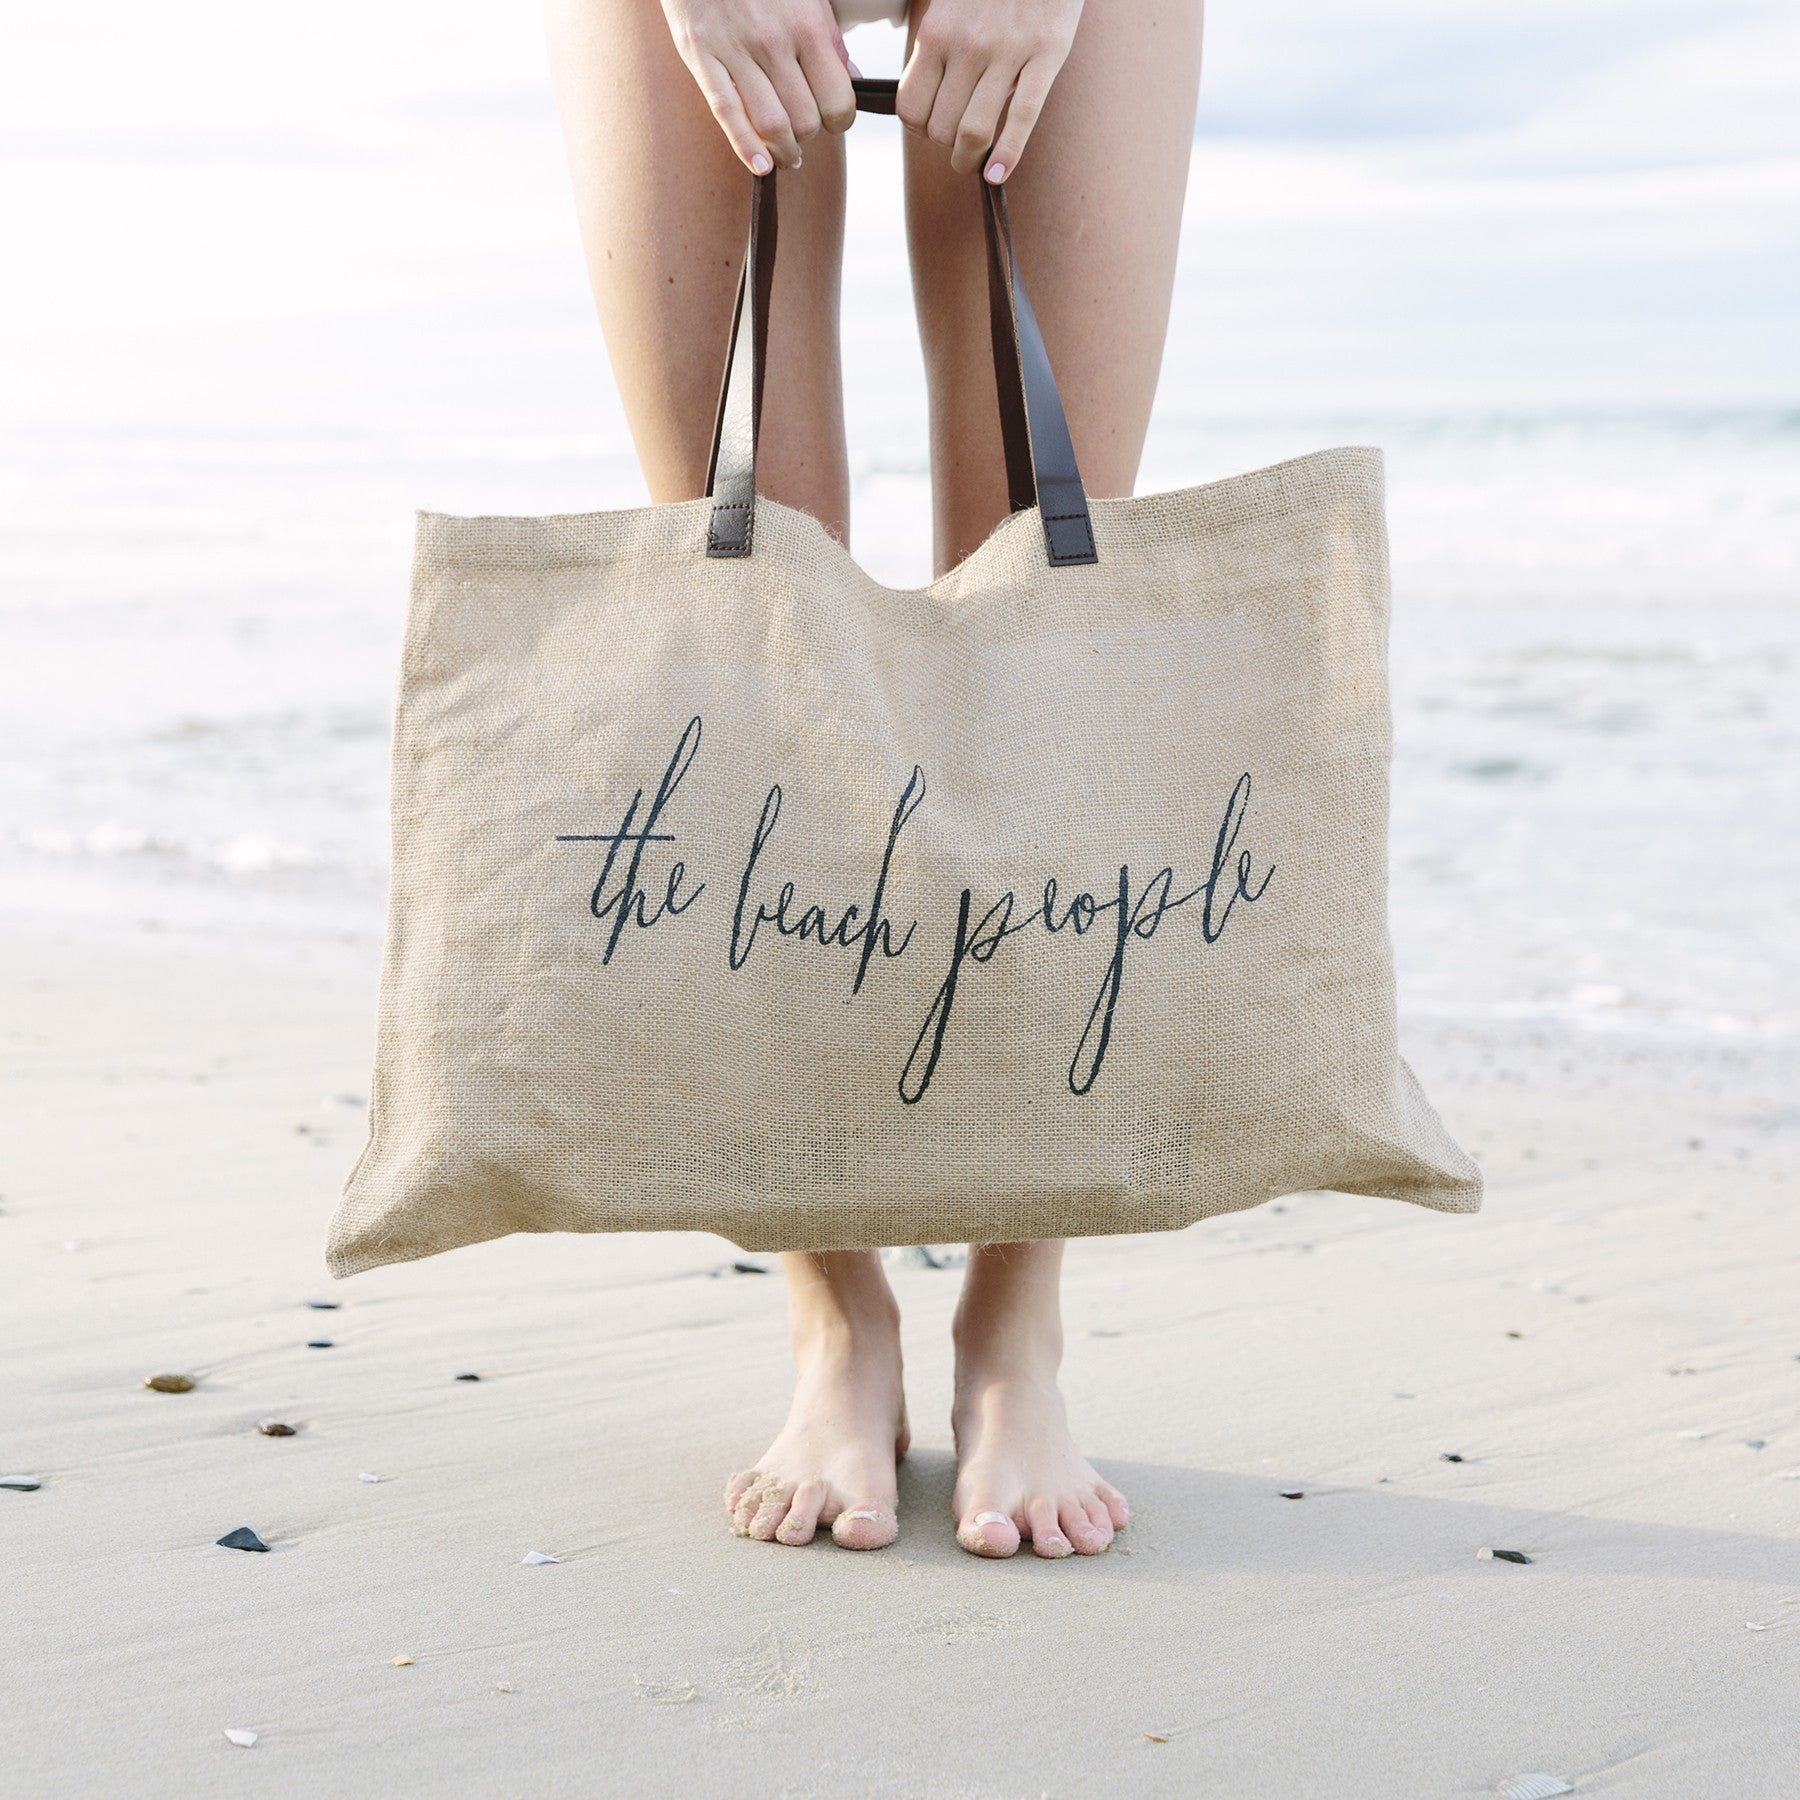 The Beach People original jute tote bag